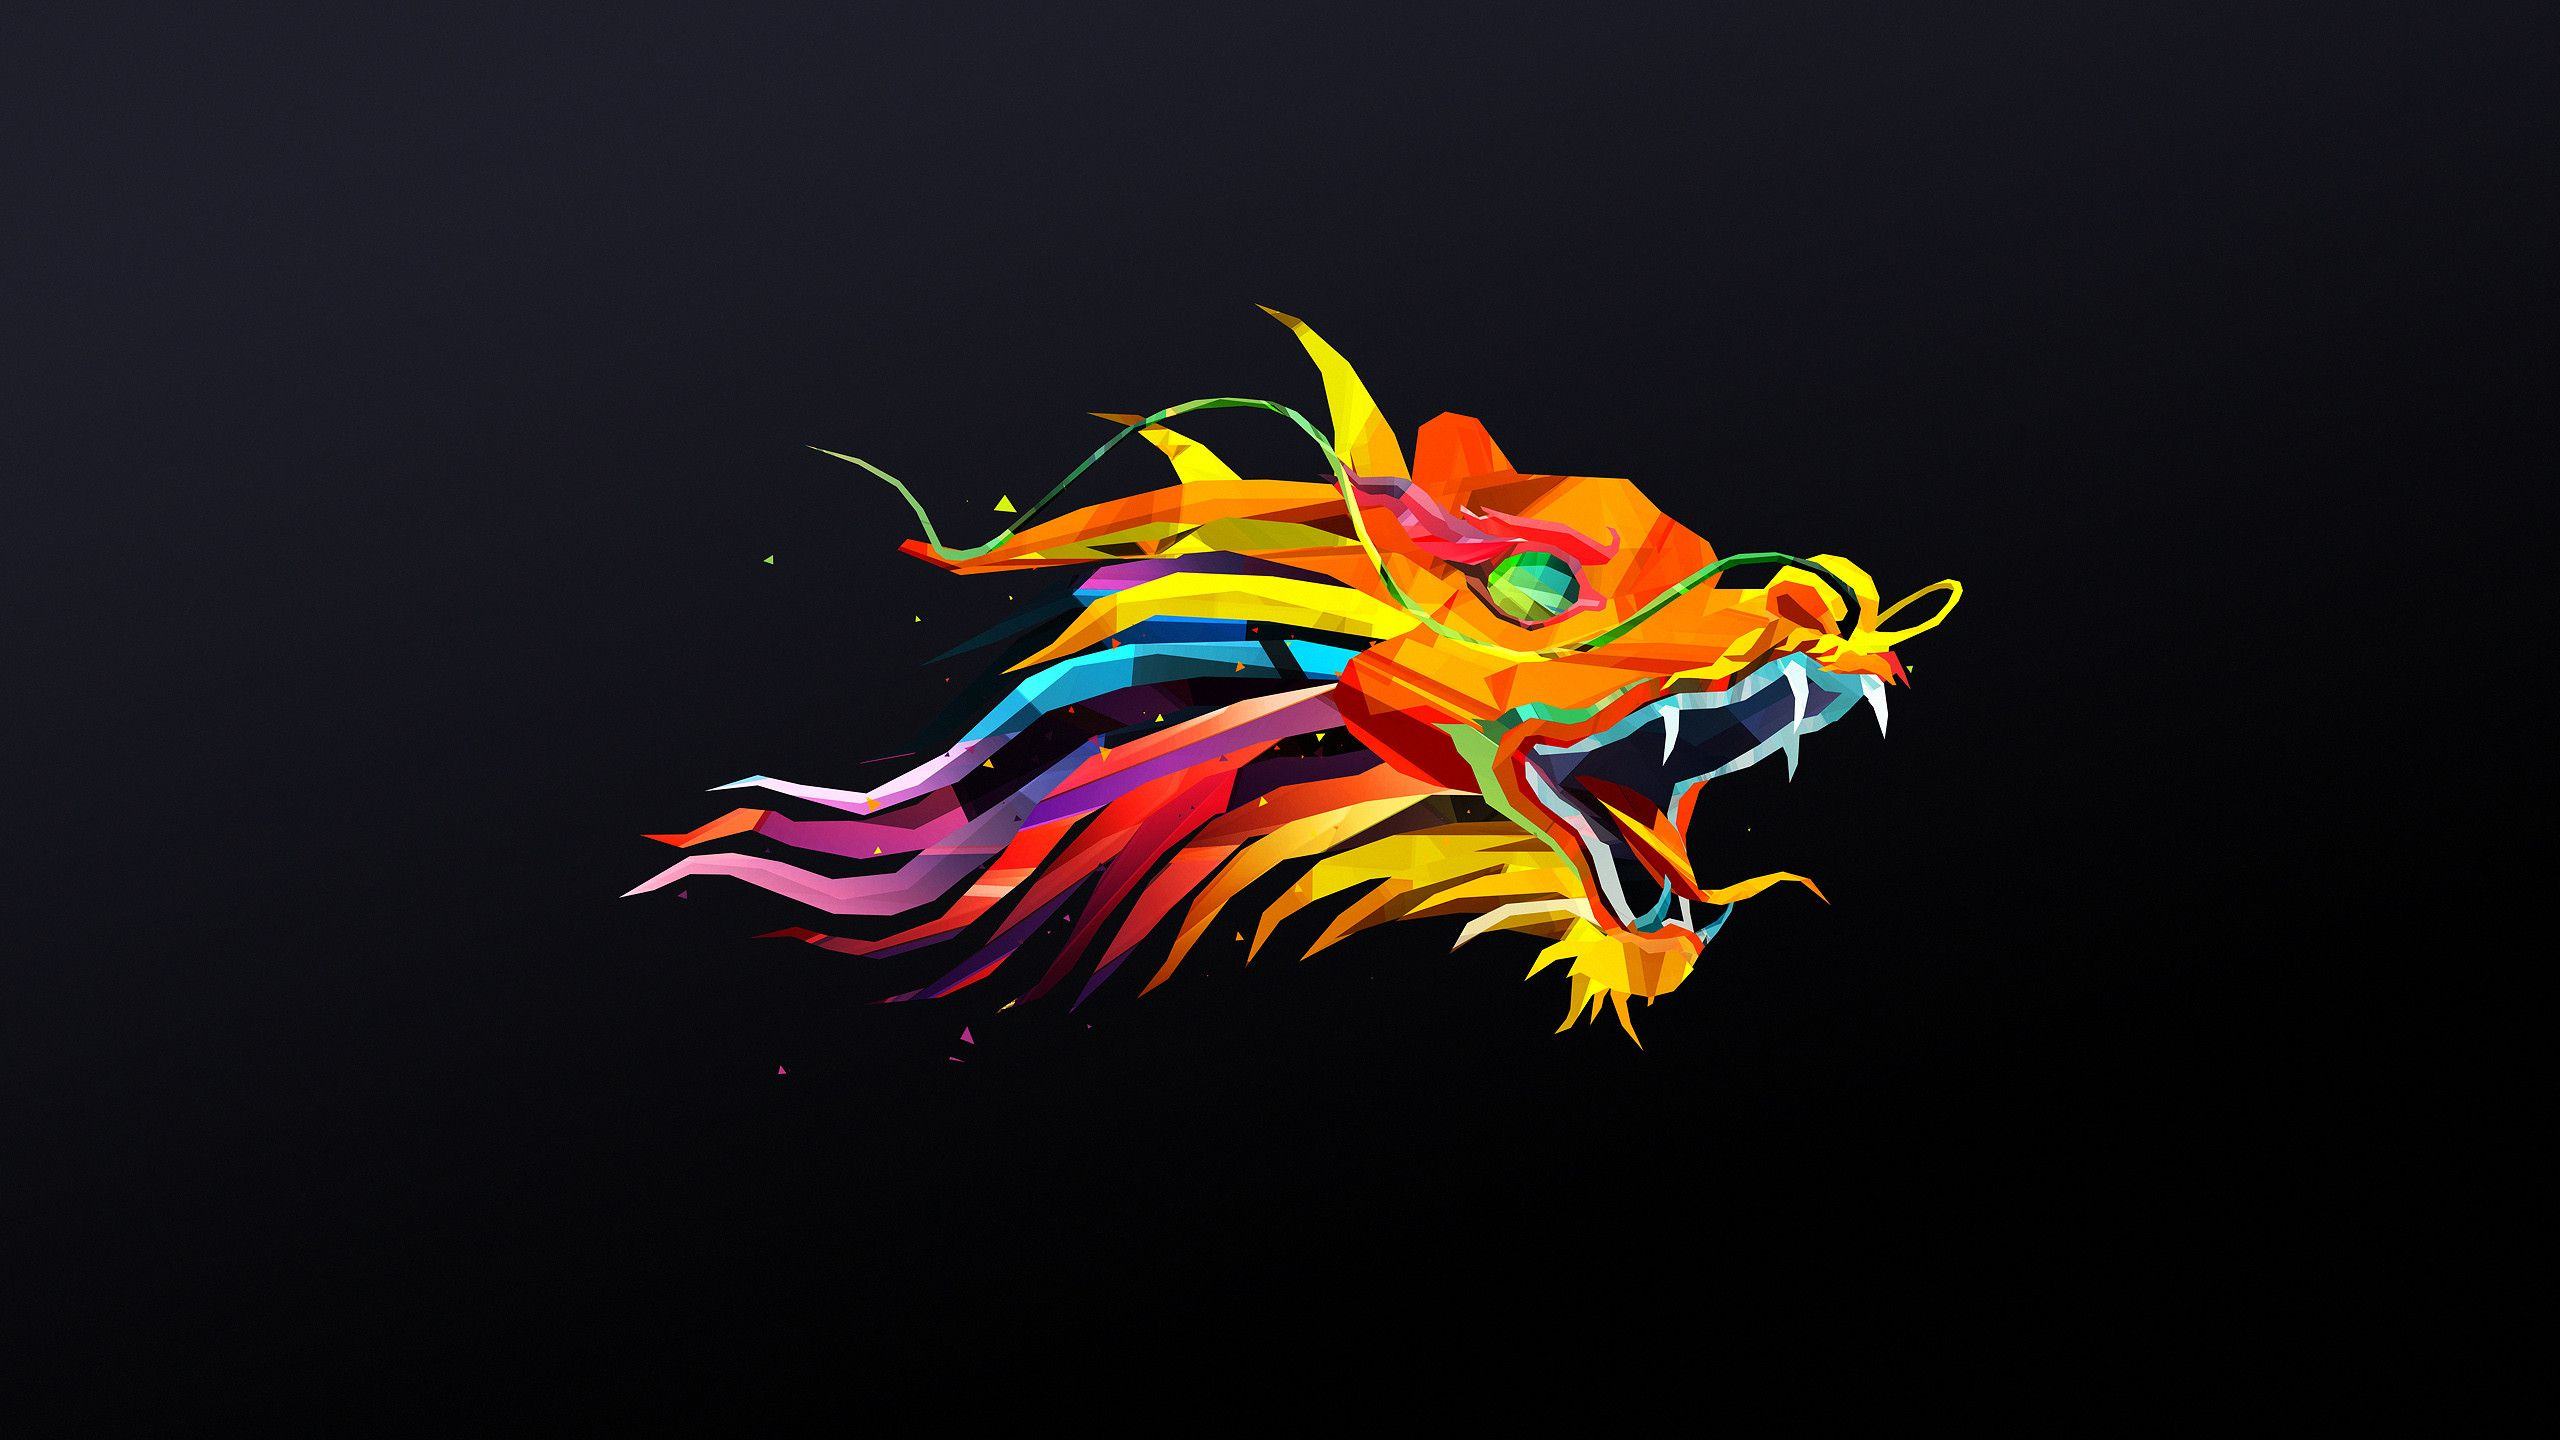 Awesome Animals Wallpapers Geometric Animal Wallpaper Geometric Art Animal Painting Wallpaper